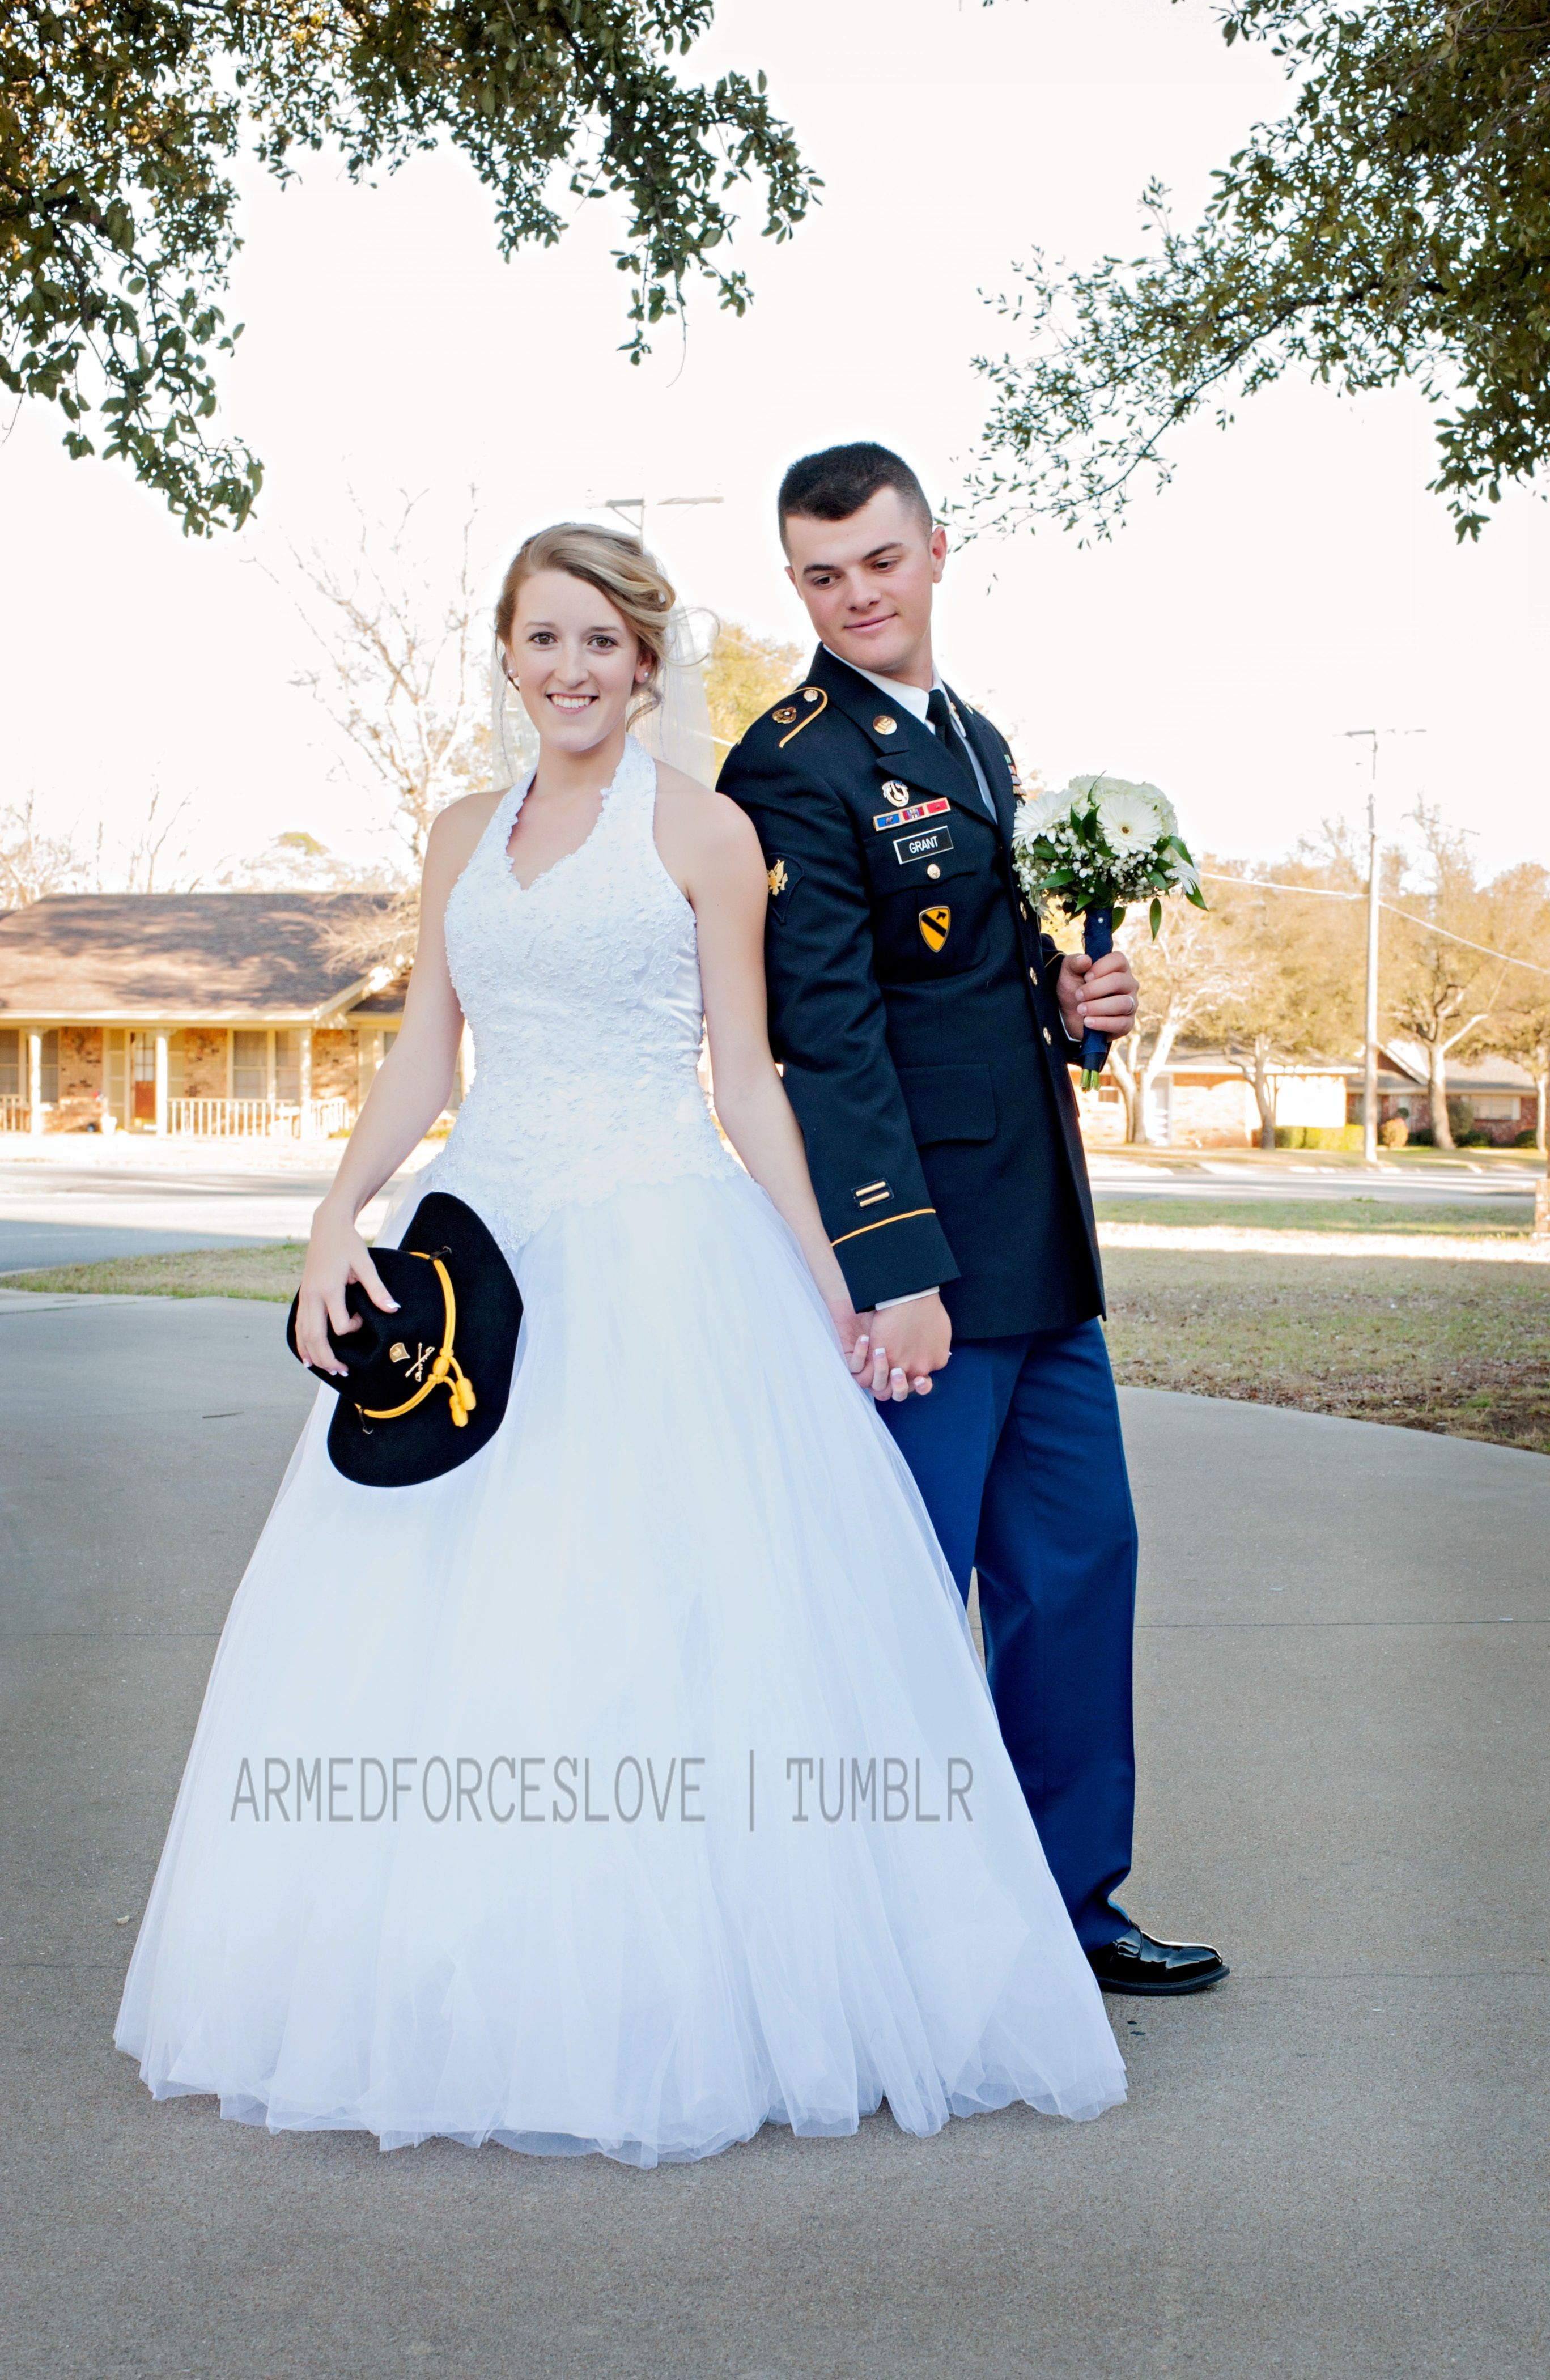 Military Army Wedding My Husband And I After Our Ceremony But Before The Reception